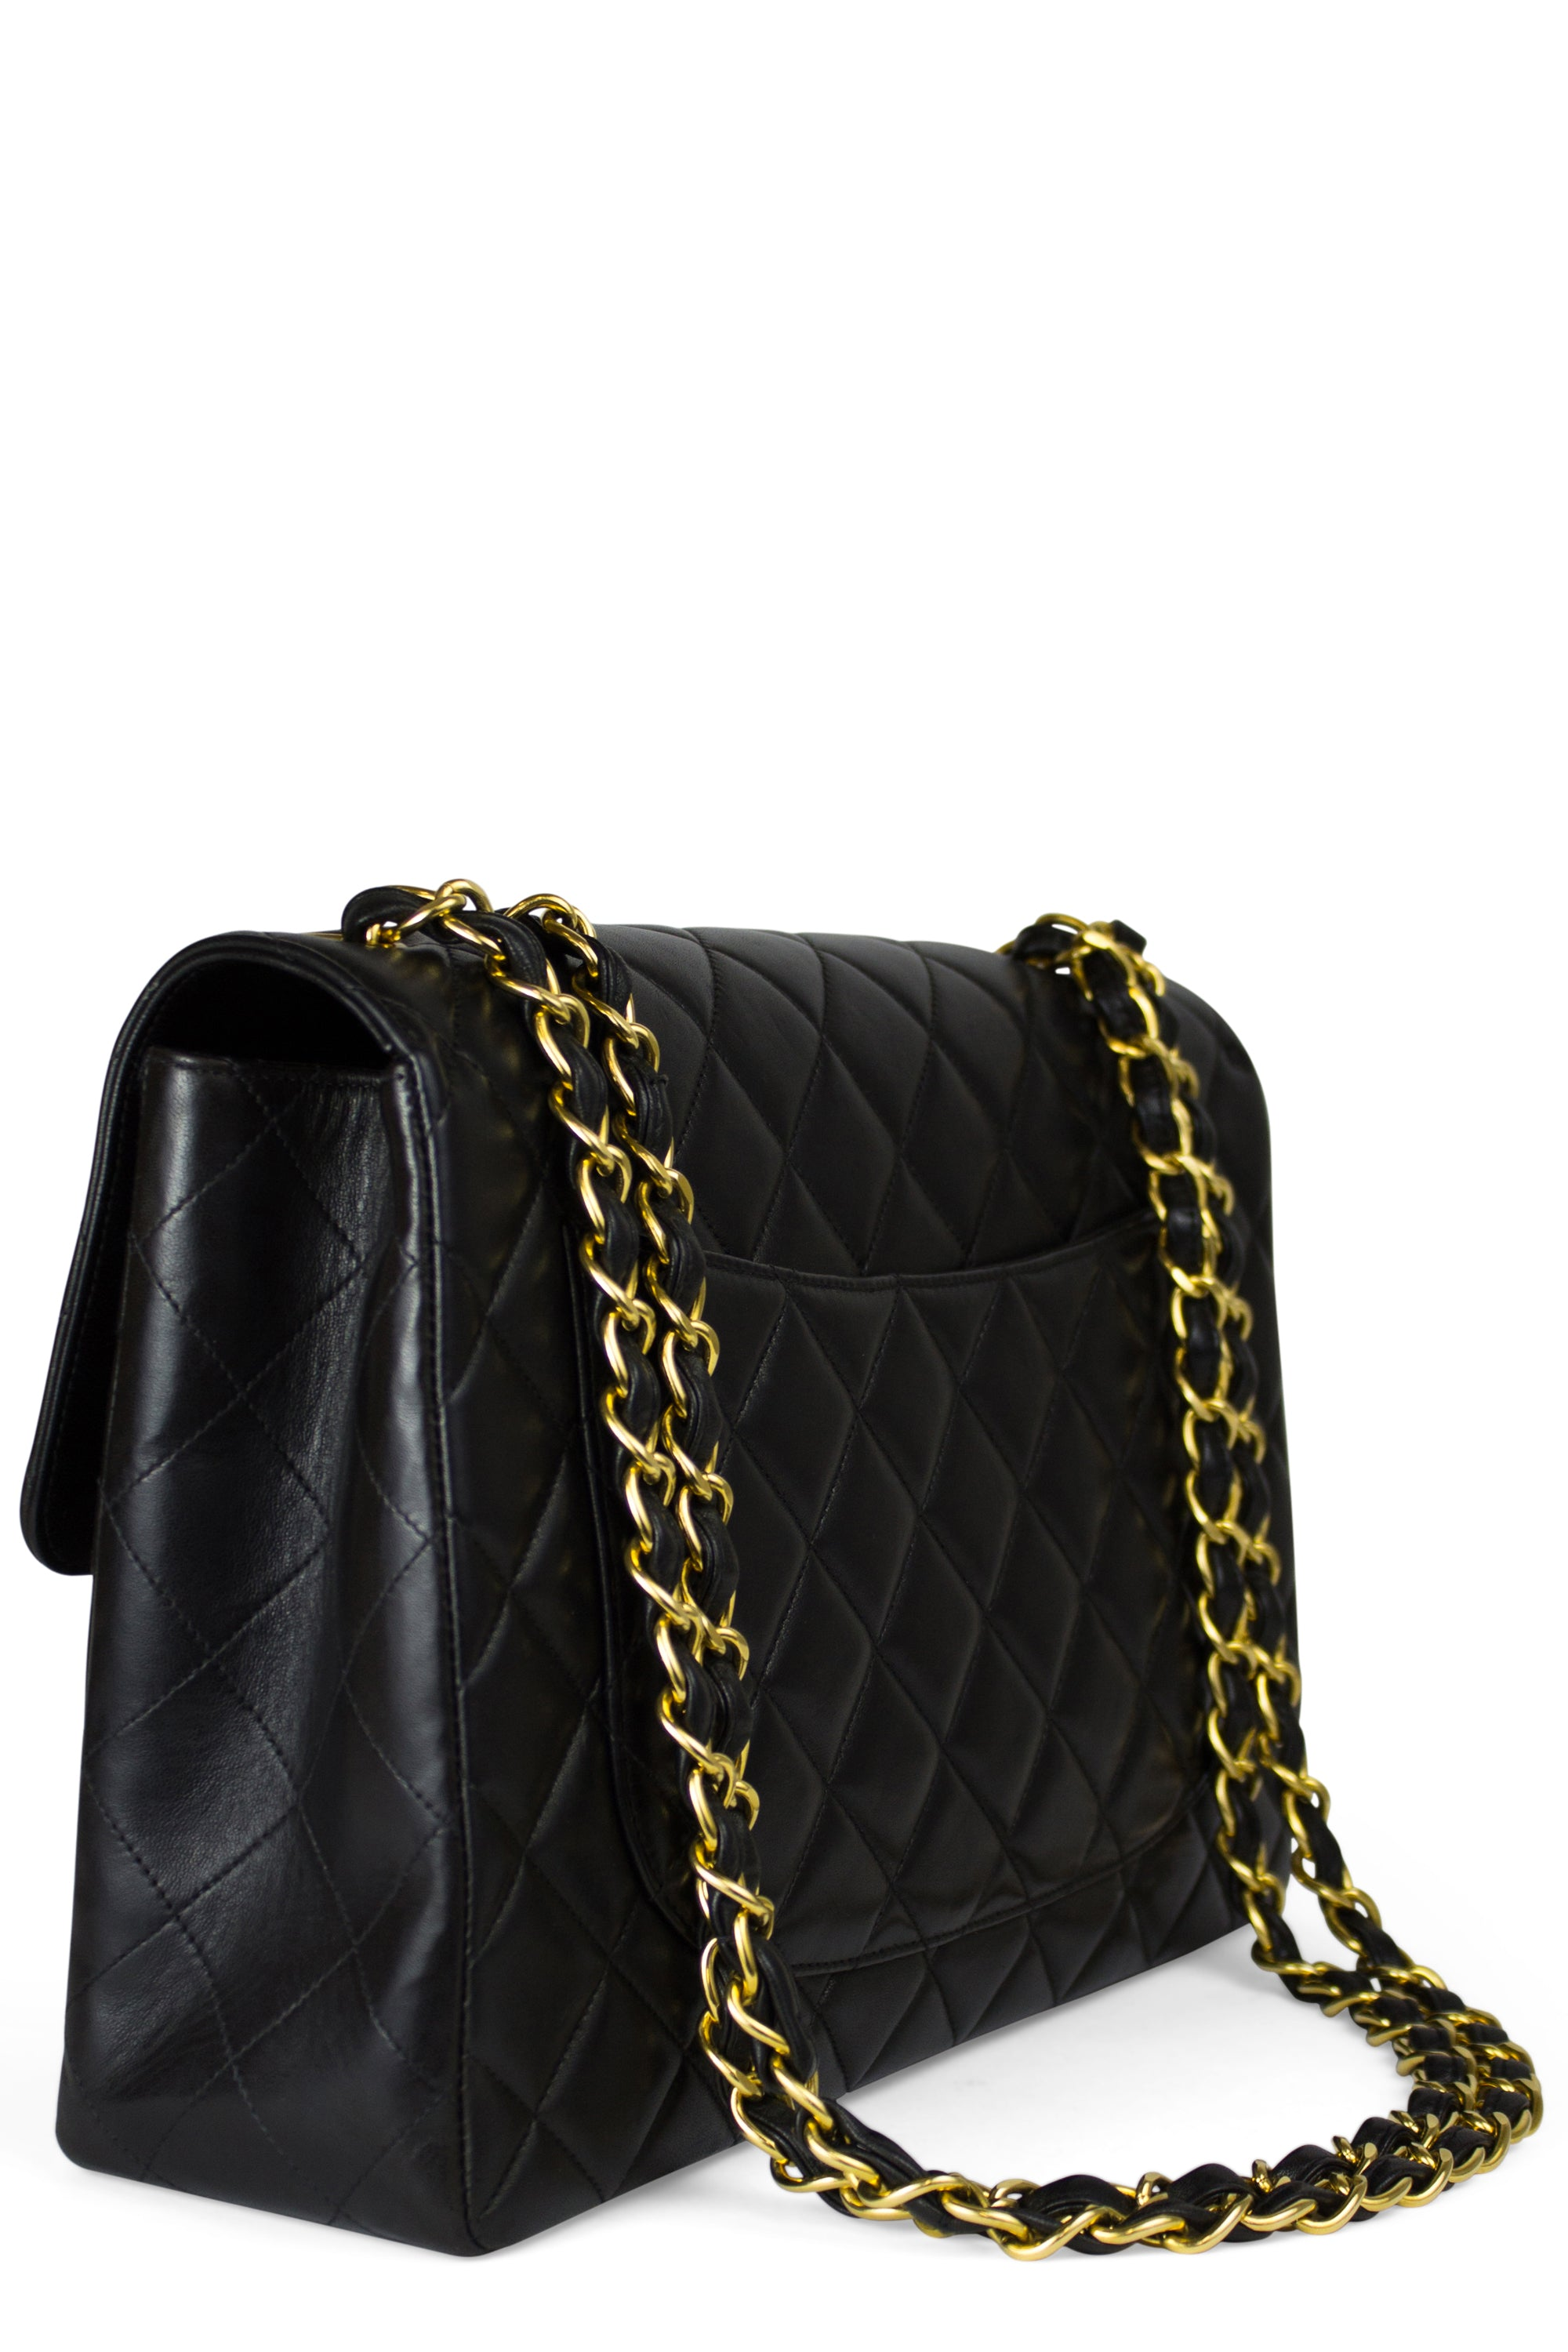 CHANEL Vintage Jumbo Flap  Bag